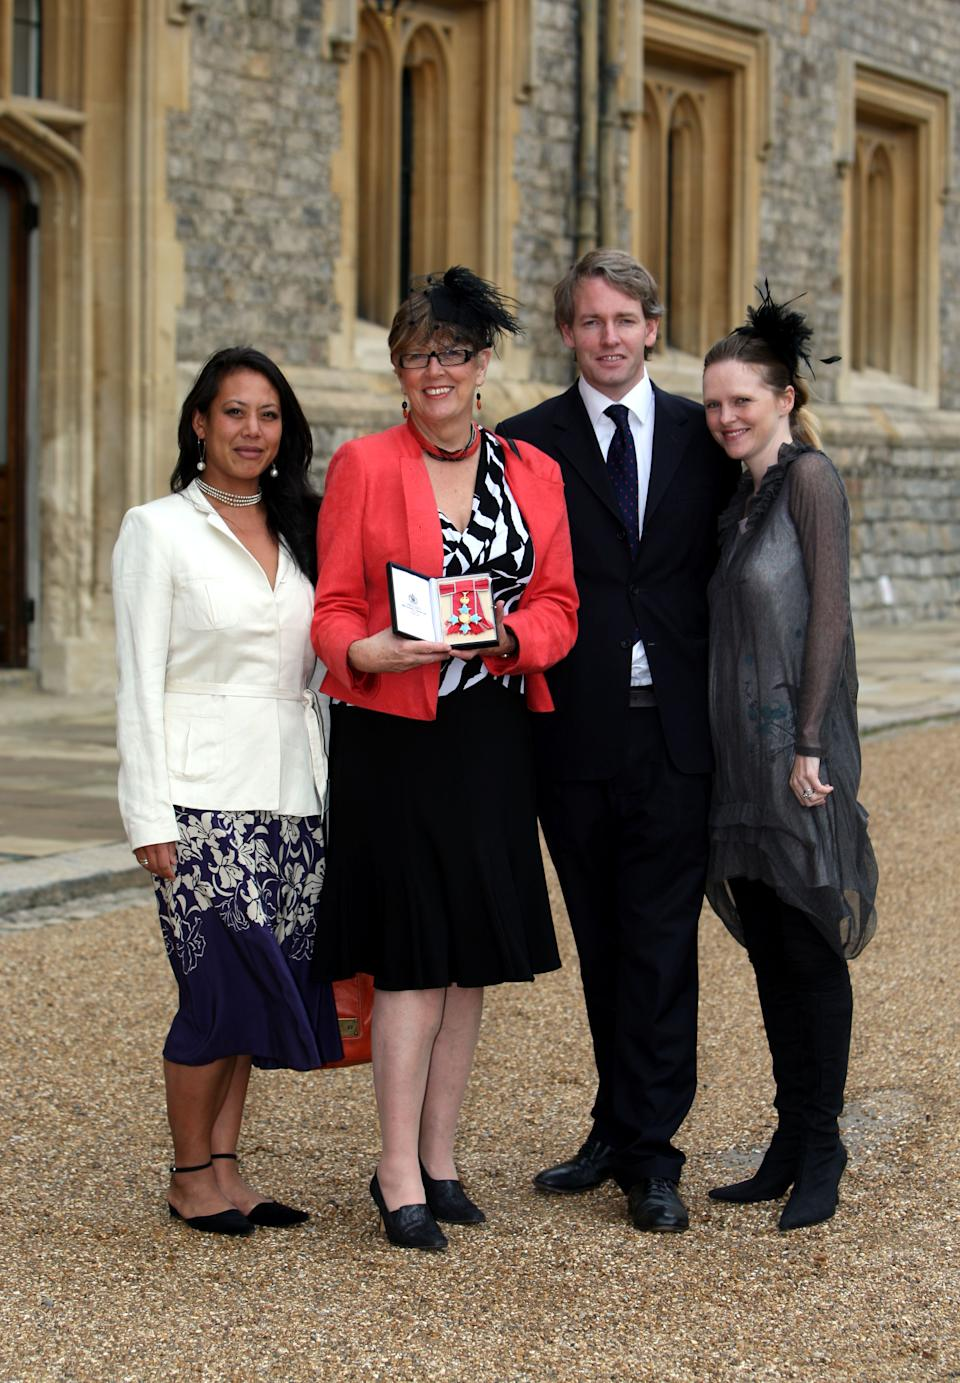 Prue Leith (2nd-L), with daughter Li-Da Kruger (L), her son Danny Kruger and his wife Emma pose after she became a Commander of the British Empire (CBE) at Windsor Castle on October 5, 2010 in Windsor, England. (Photo by Steve Parsons - WPA Pool/Getty Images)